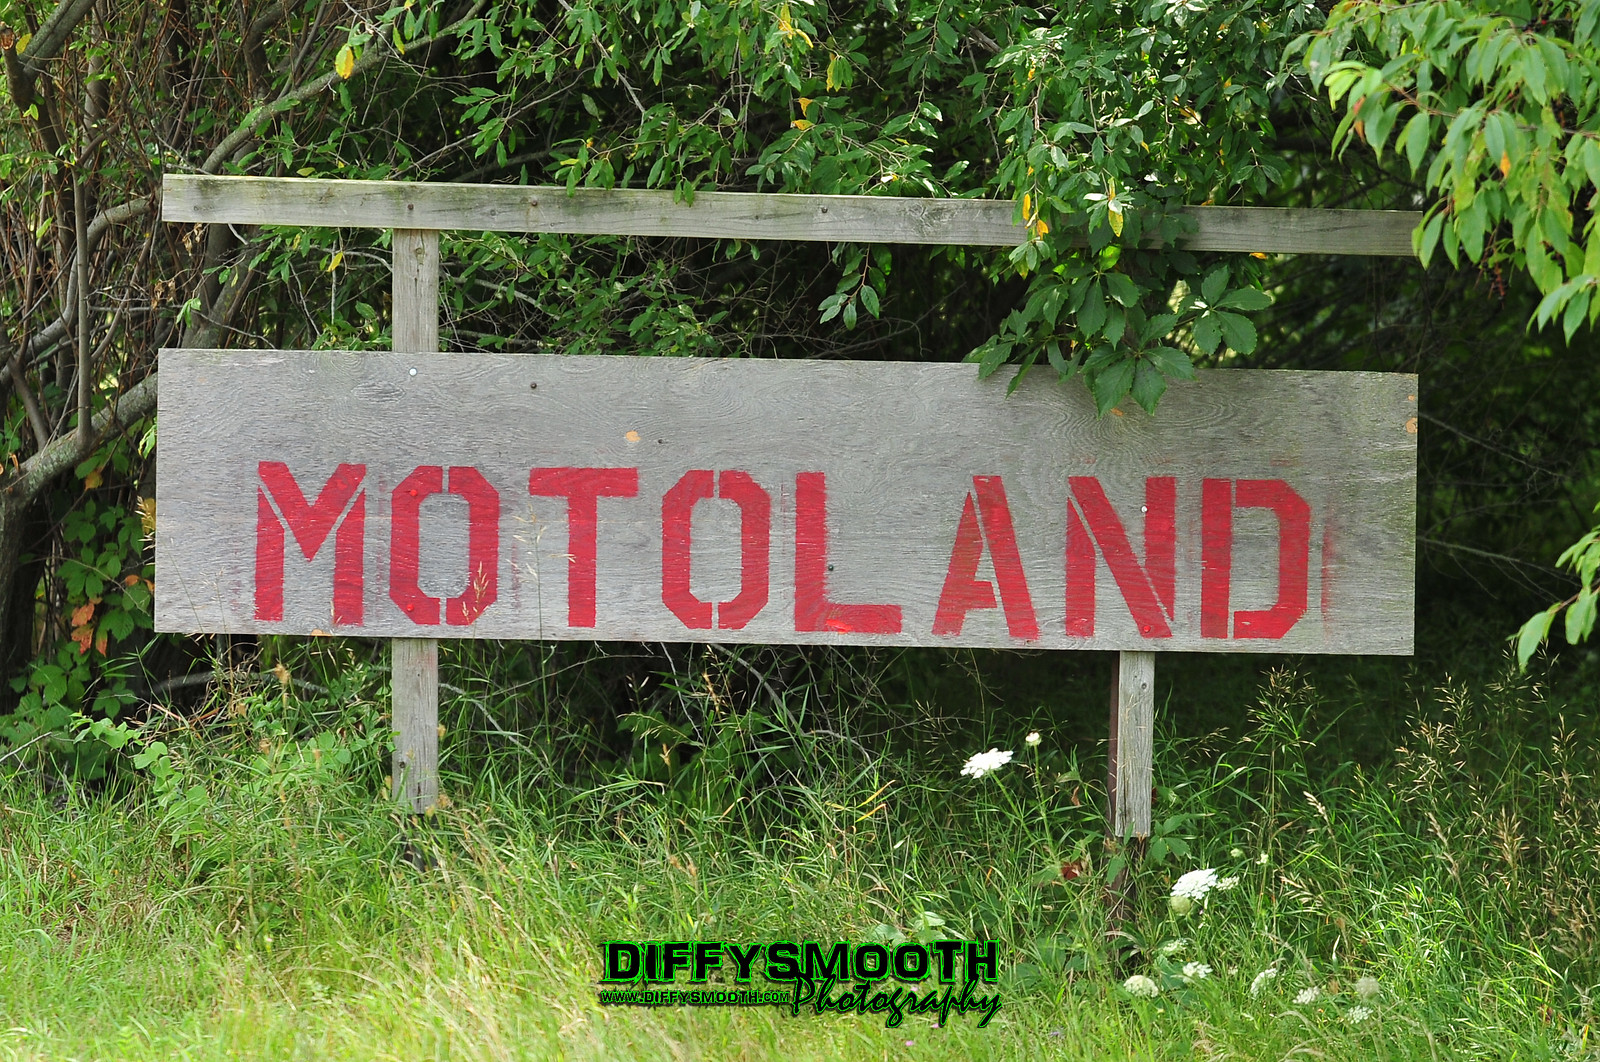 Motoland - DiffySmooth - Motocross Pictures - Vital MX